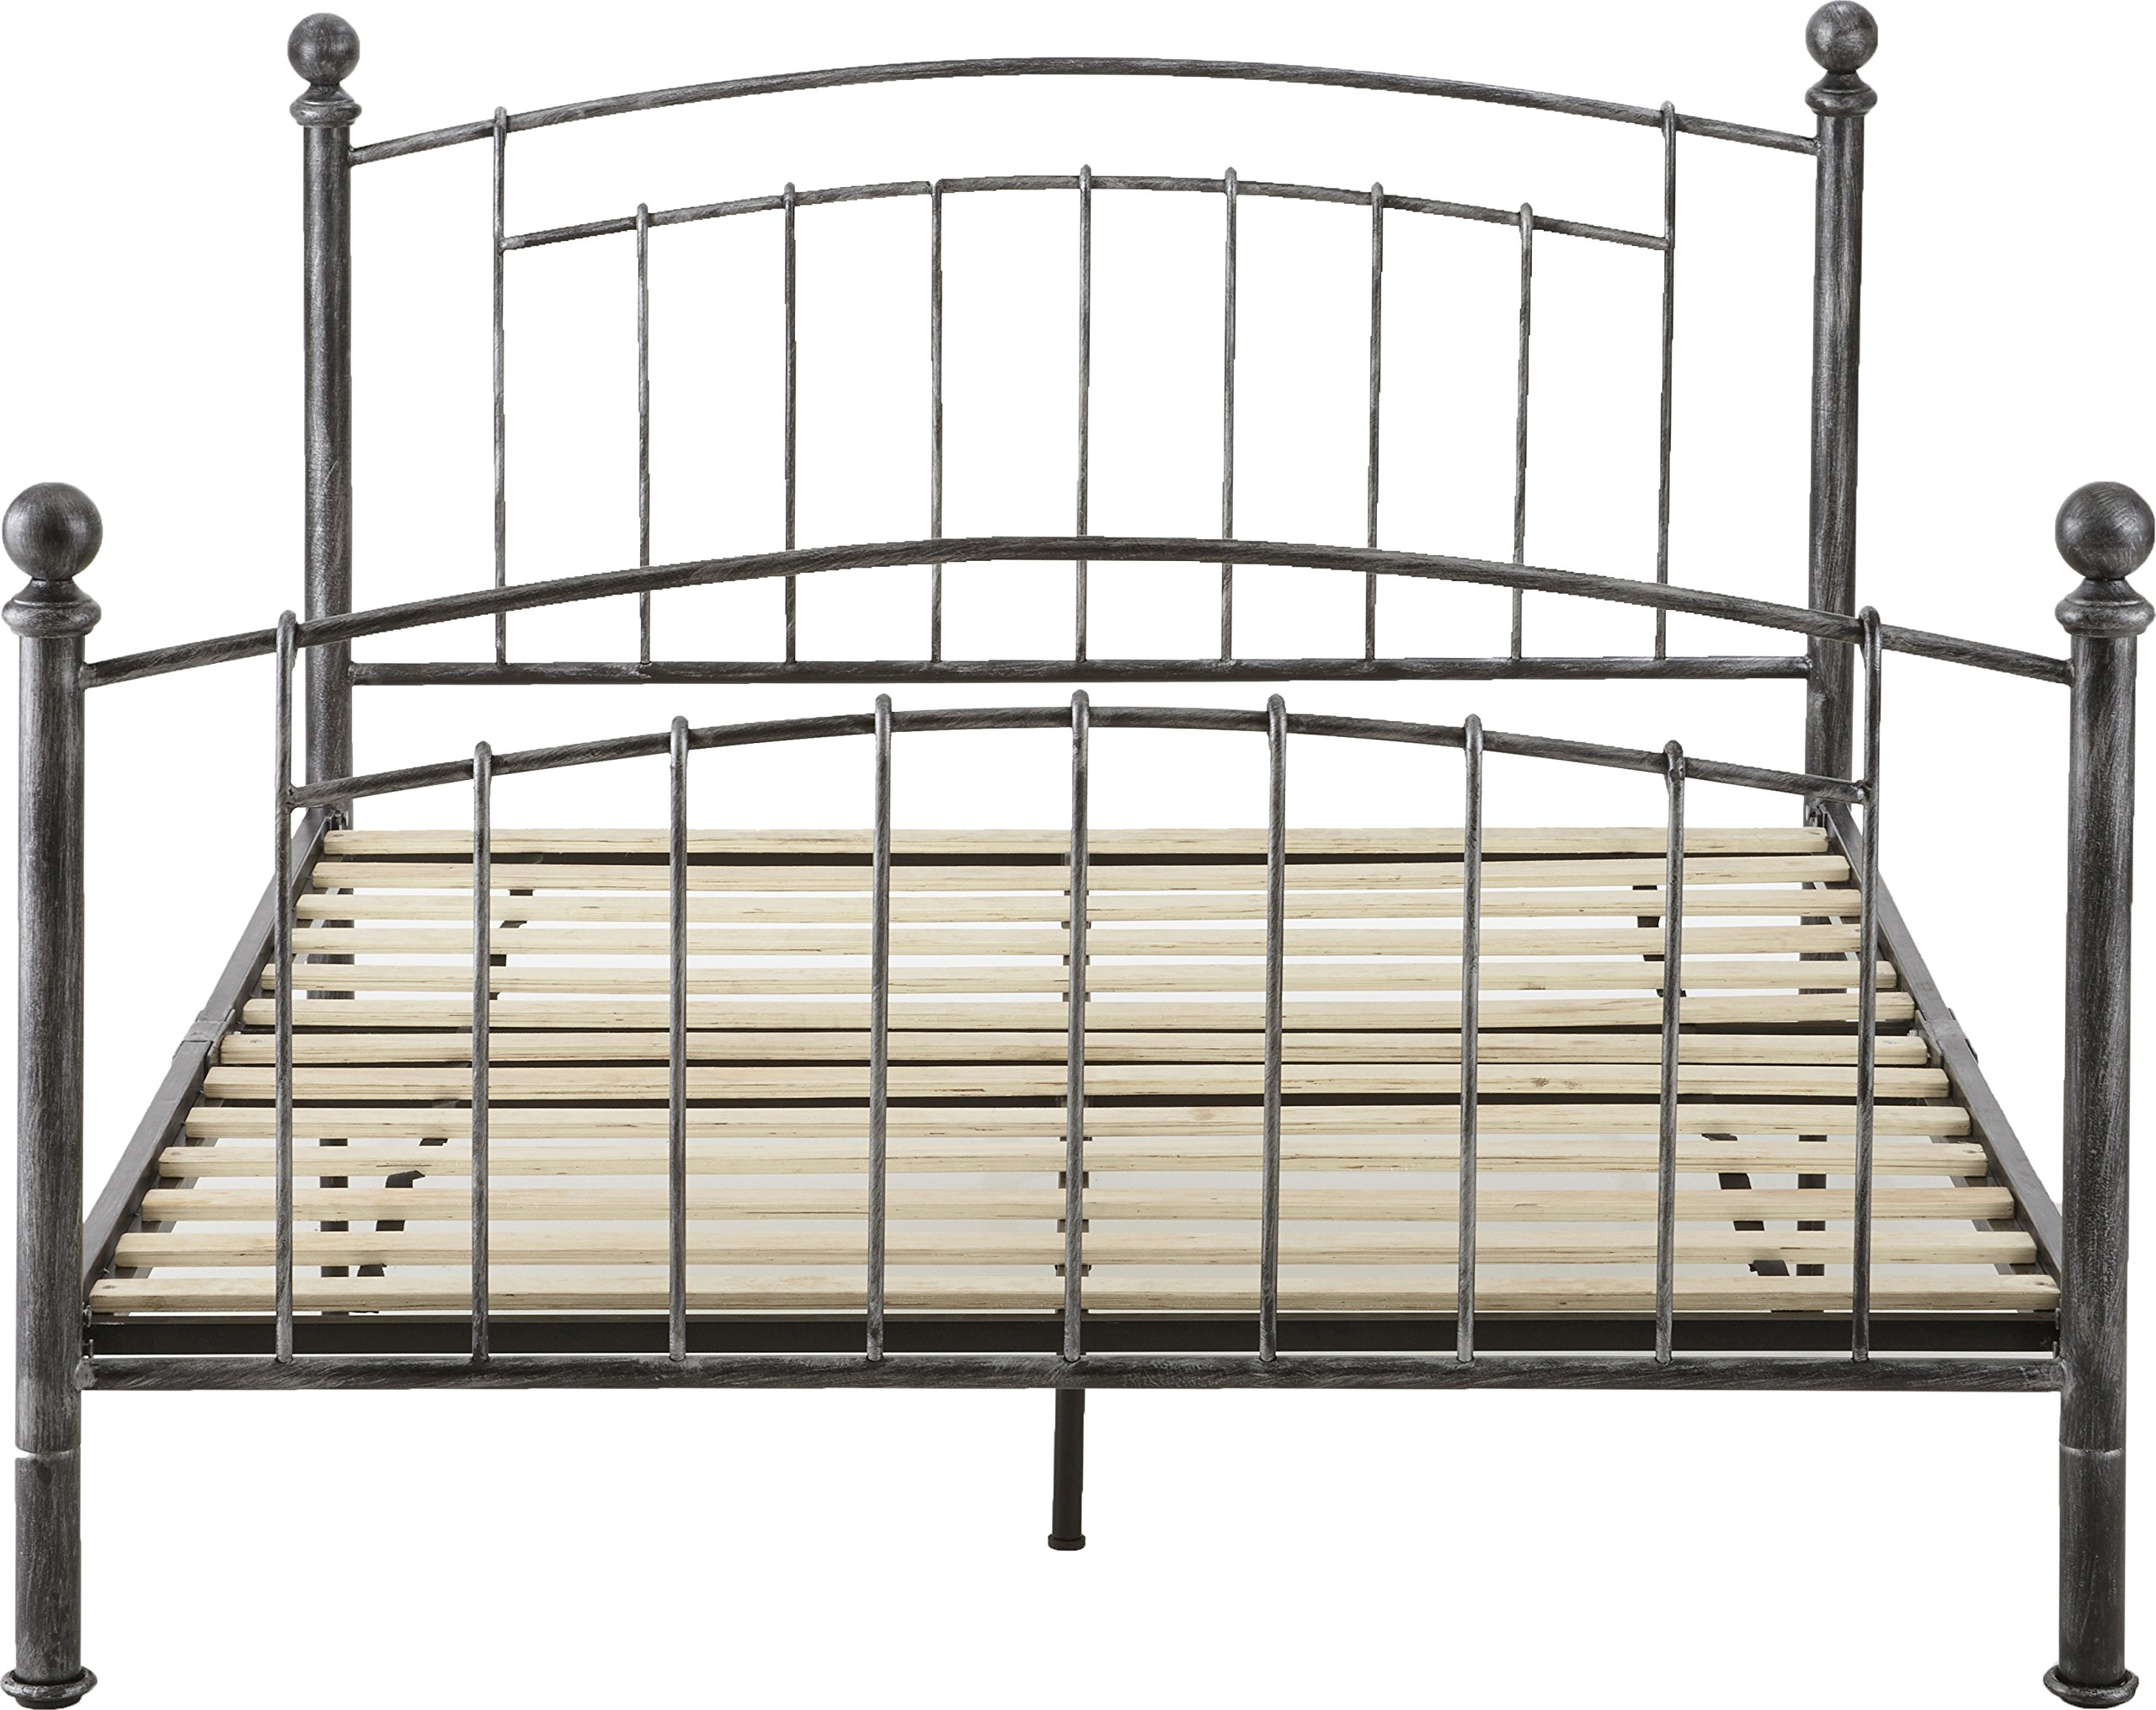 Flex Form Chandler Metal Platform Bed Frame / Mattress Foundation with Headboard and Footboard, Queen by Flex Form (Image #6)